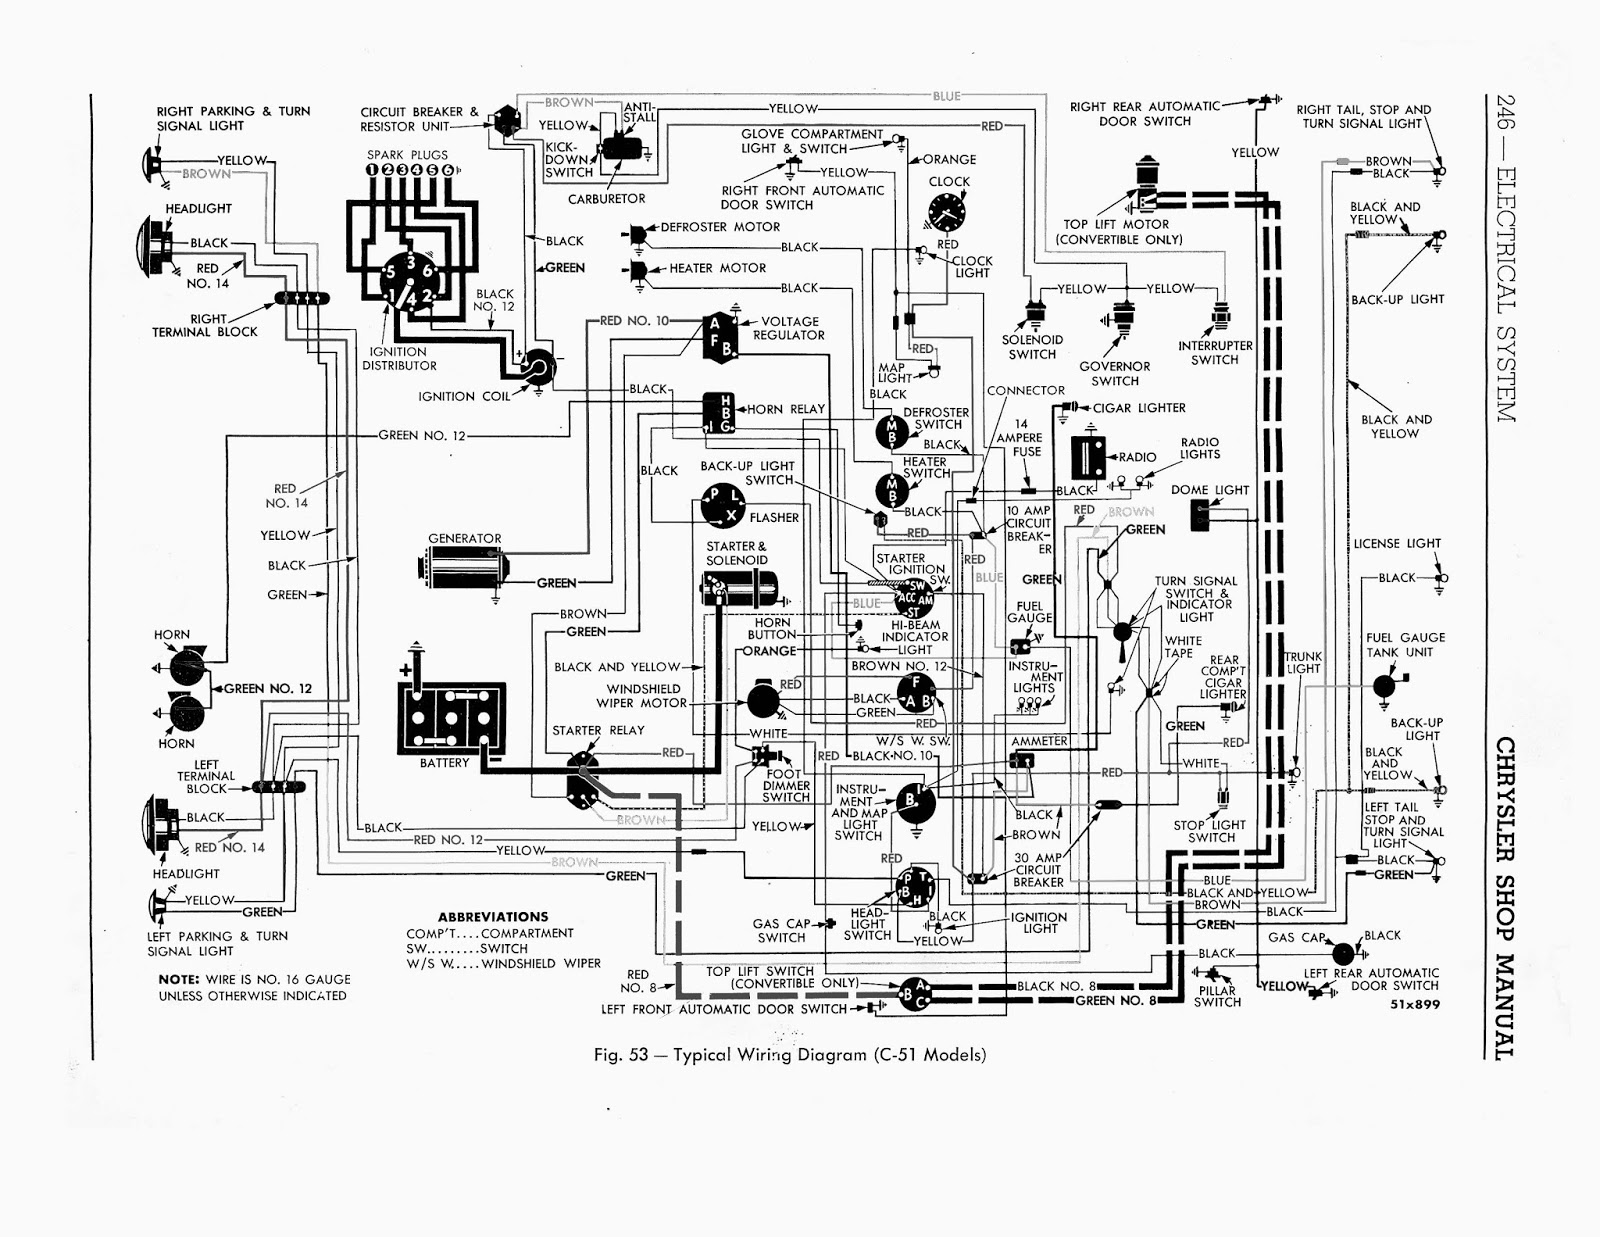 Chrysler Wiring Diagrams Schematics Thermo King V250 Diagram 14 Mv 1 Get Free Image About